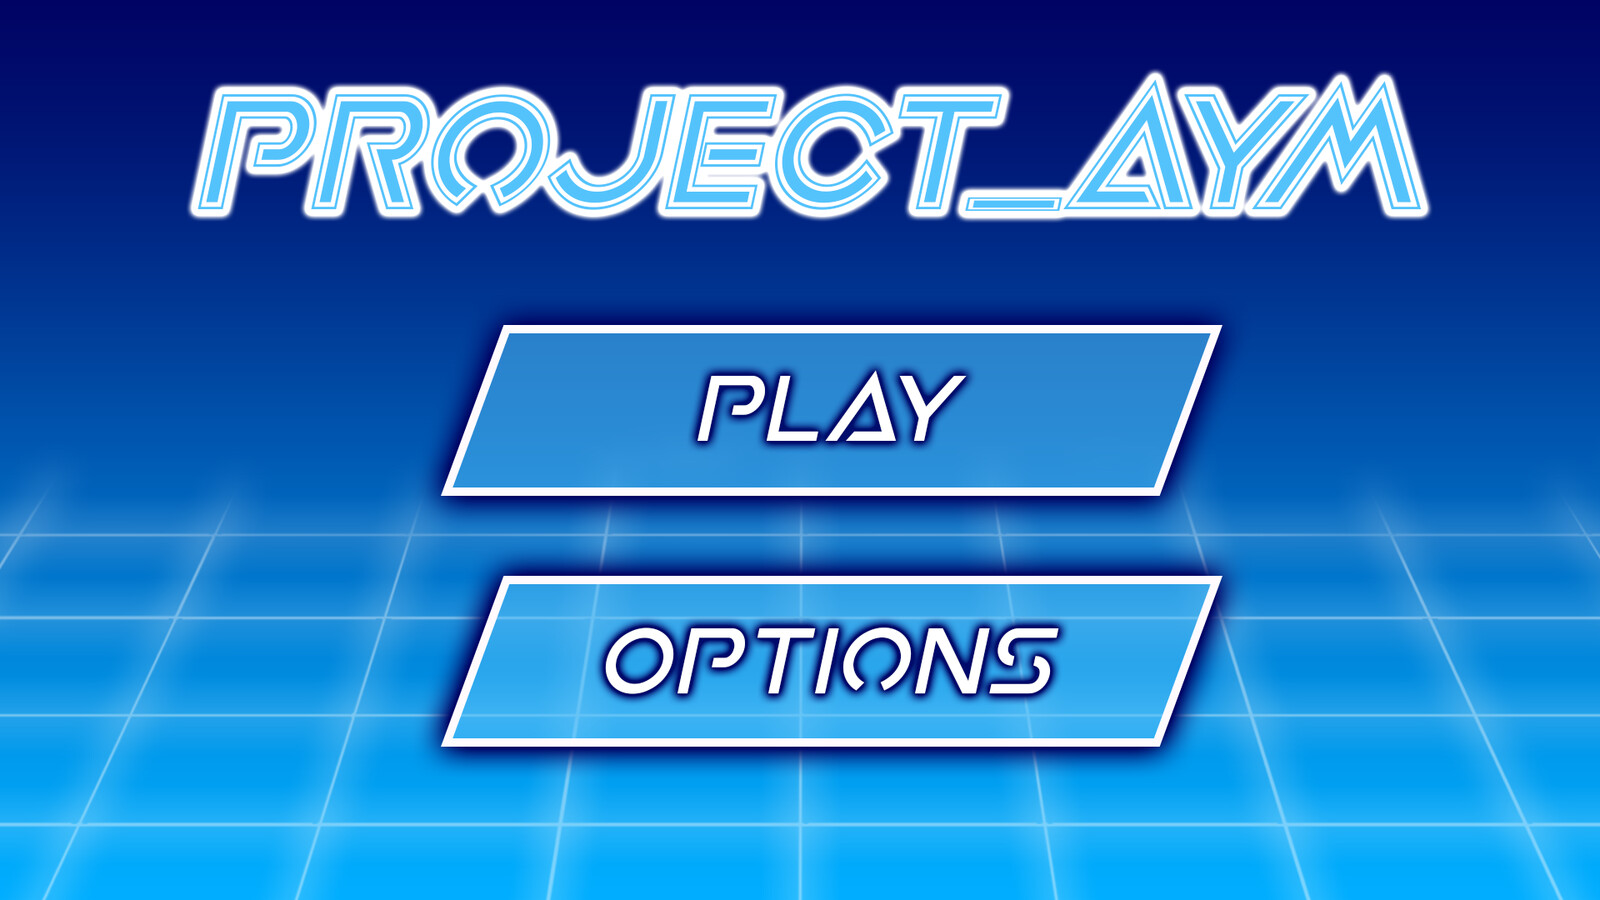 This is the Main menu screen that I designed.